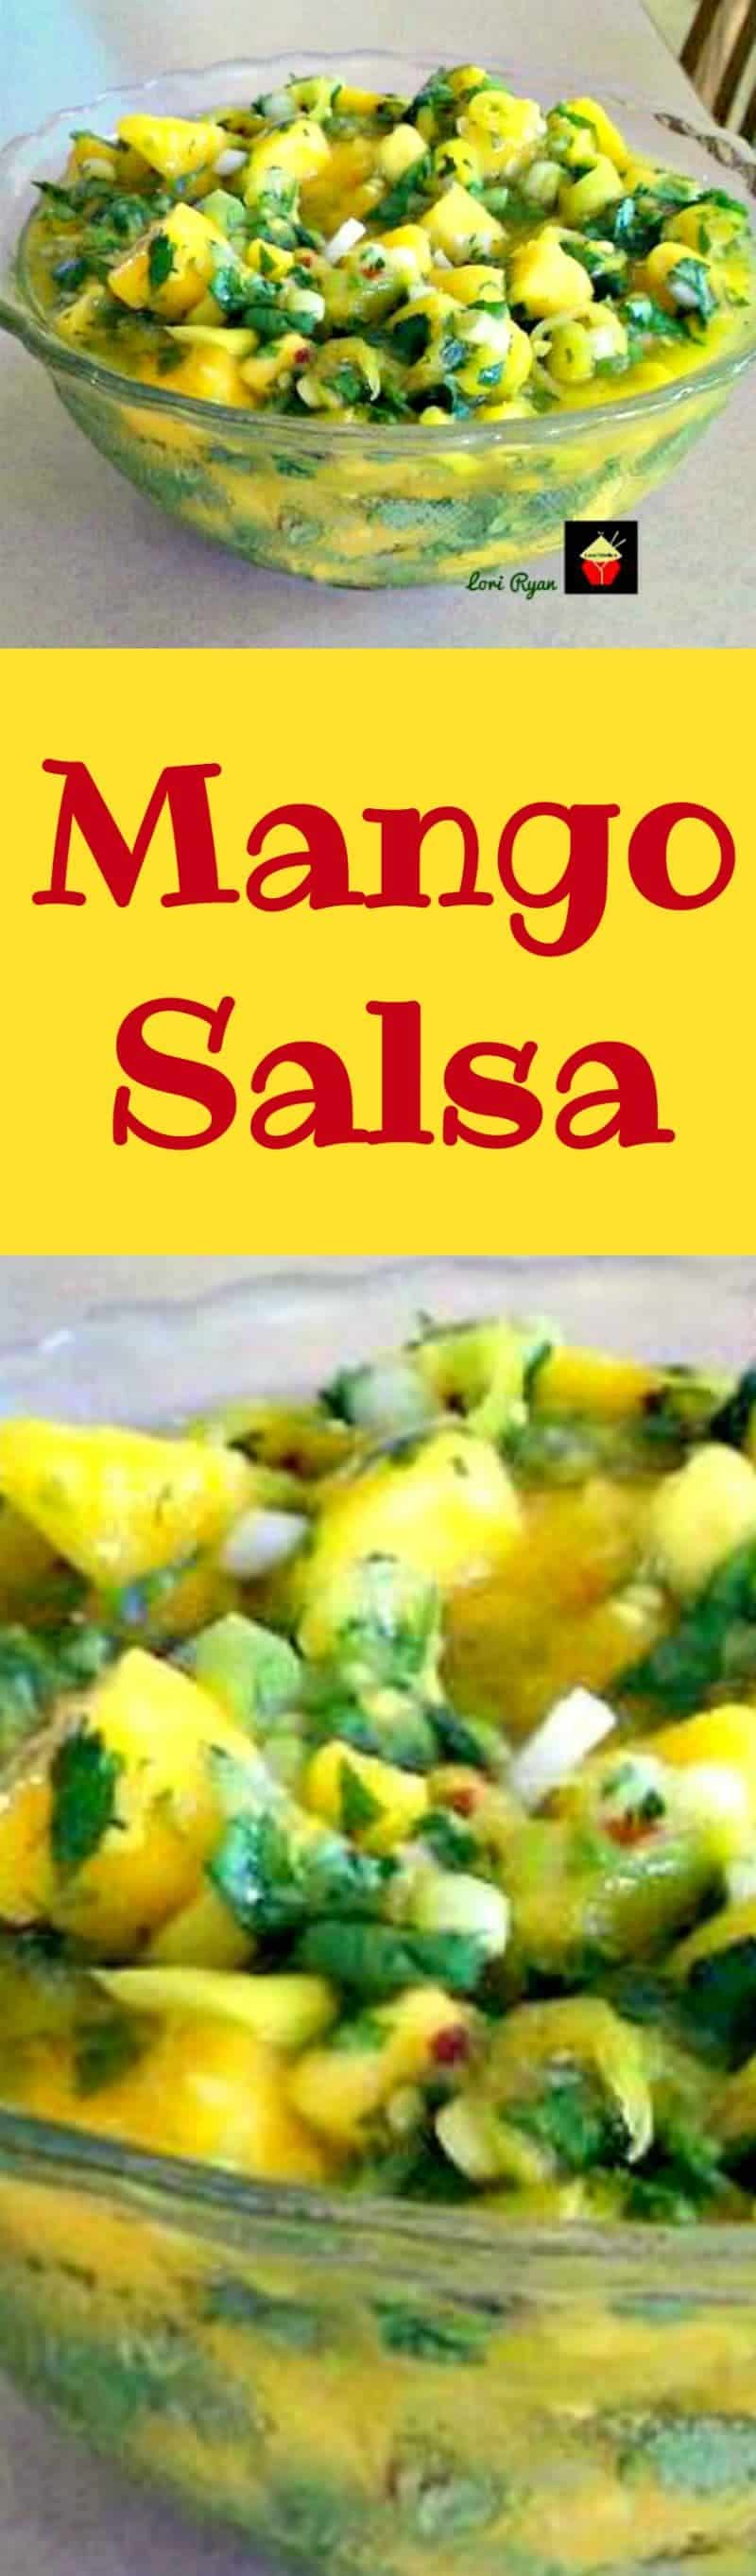 Mango Salas is so delicious! It's quick and easy to prepare and the combination of flavors makes for a very refreshing dish!